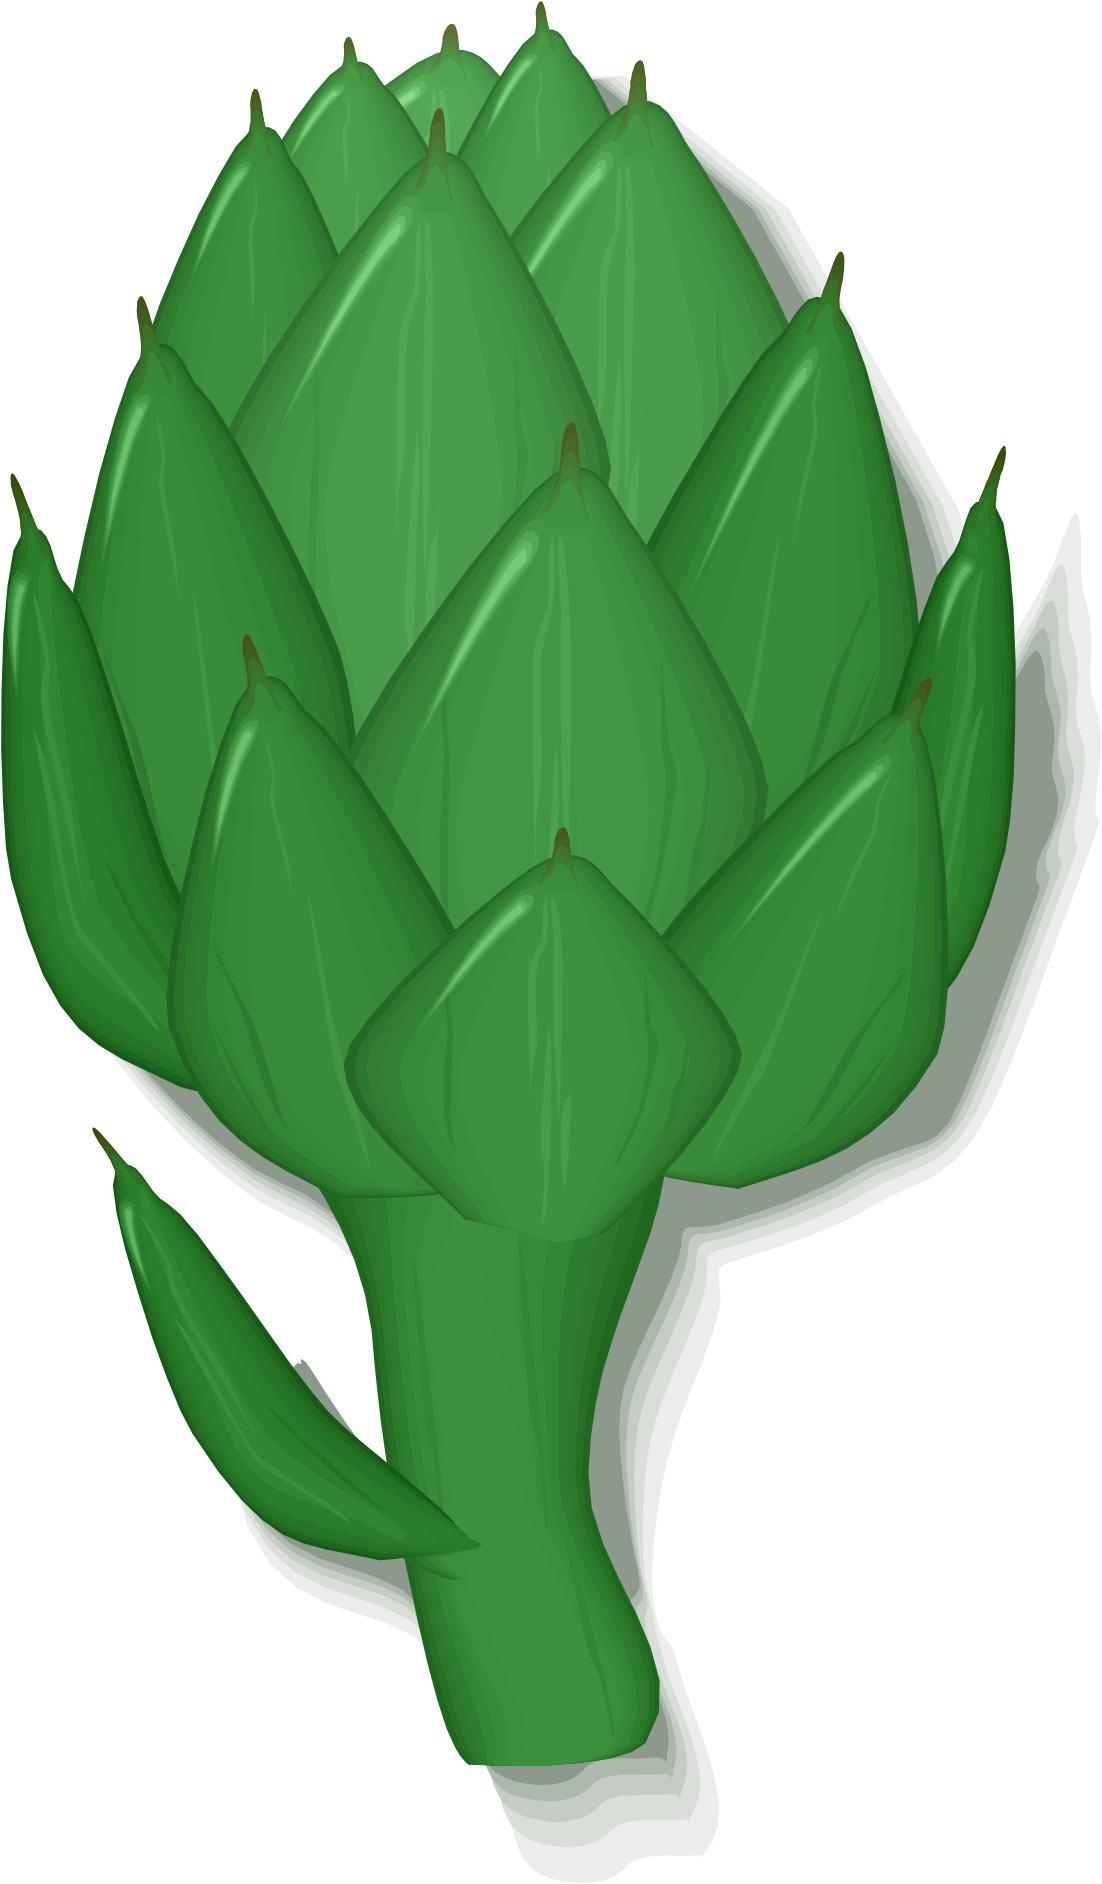 Transparent clipart broccoli - Creative Commons Clipart - Wikimedia Commons